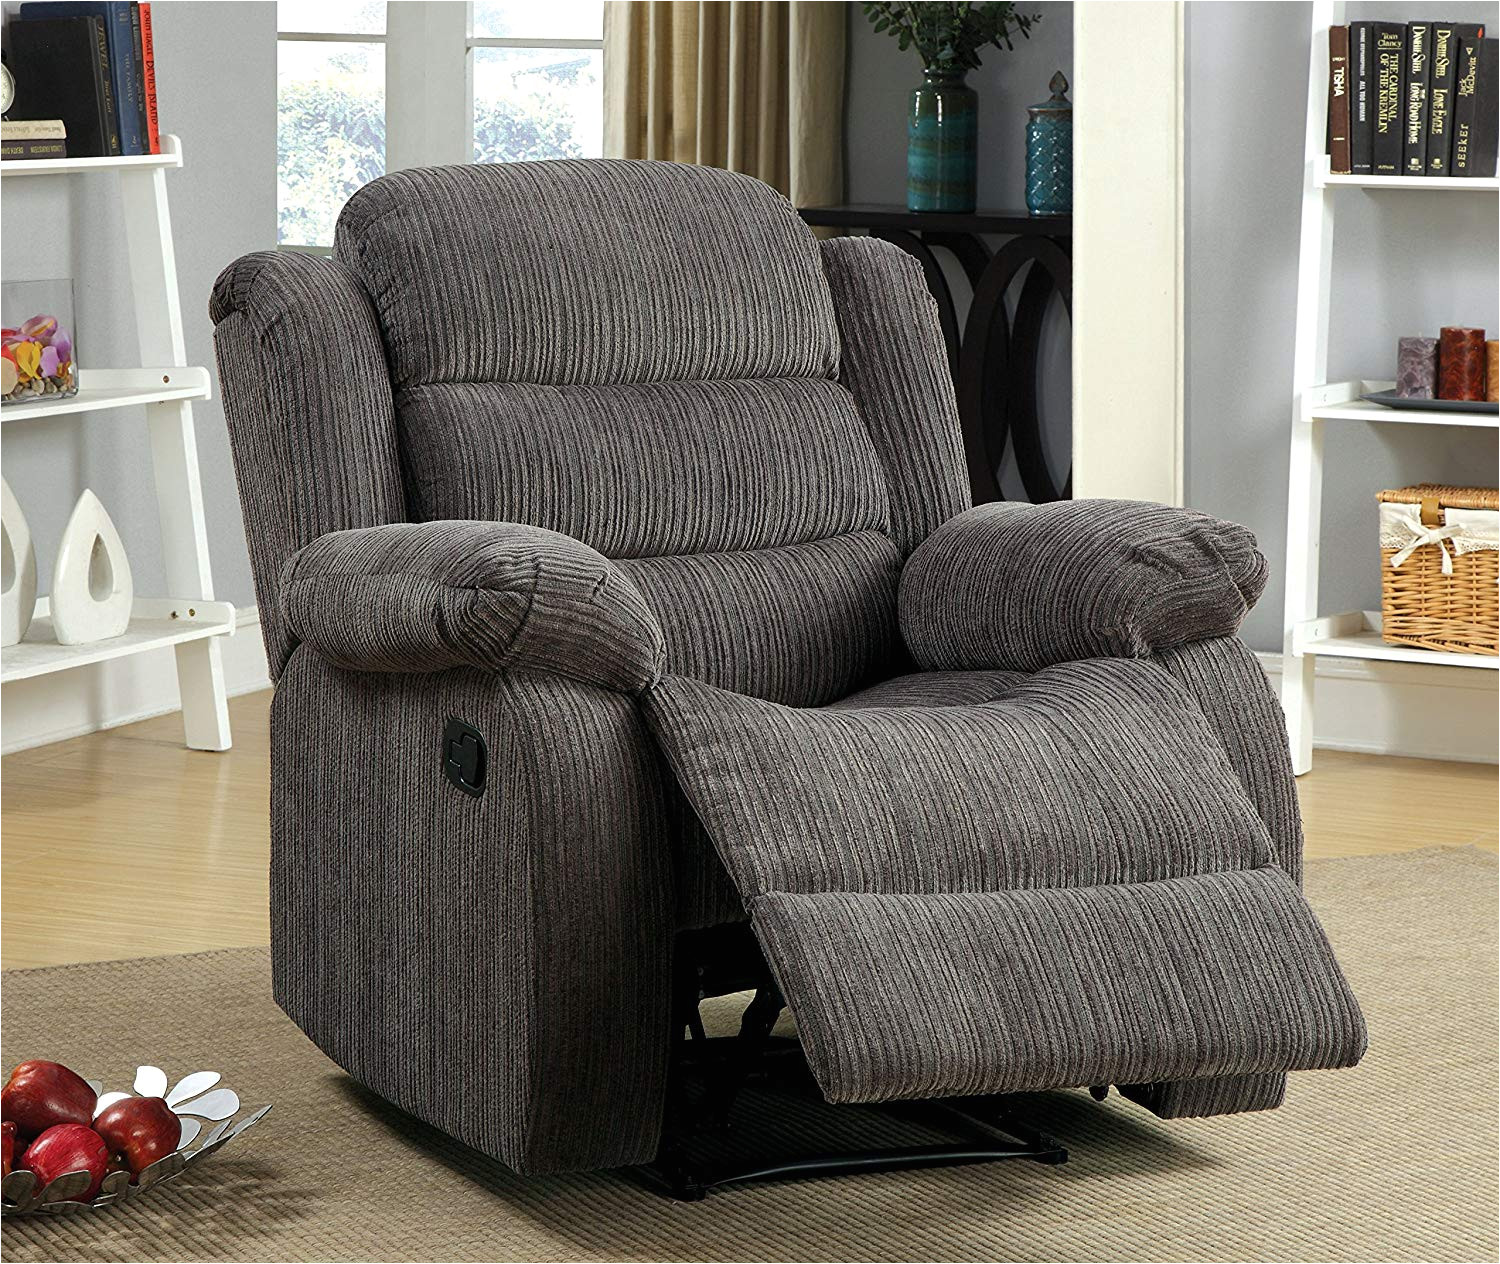 amazon com furniture of america blake chenille recliner chair gray kitchen dining